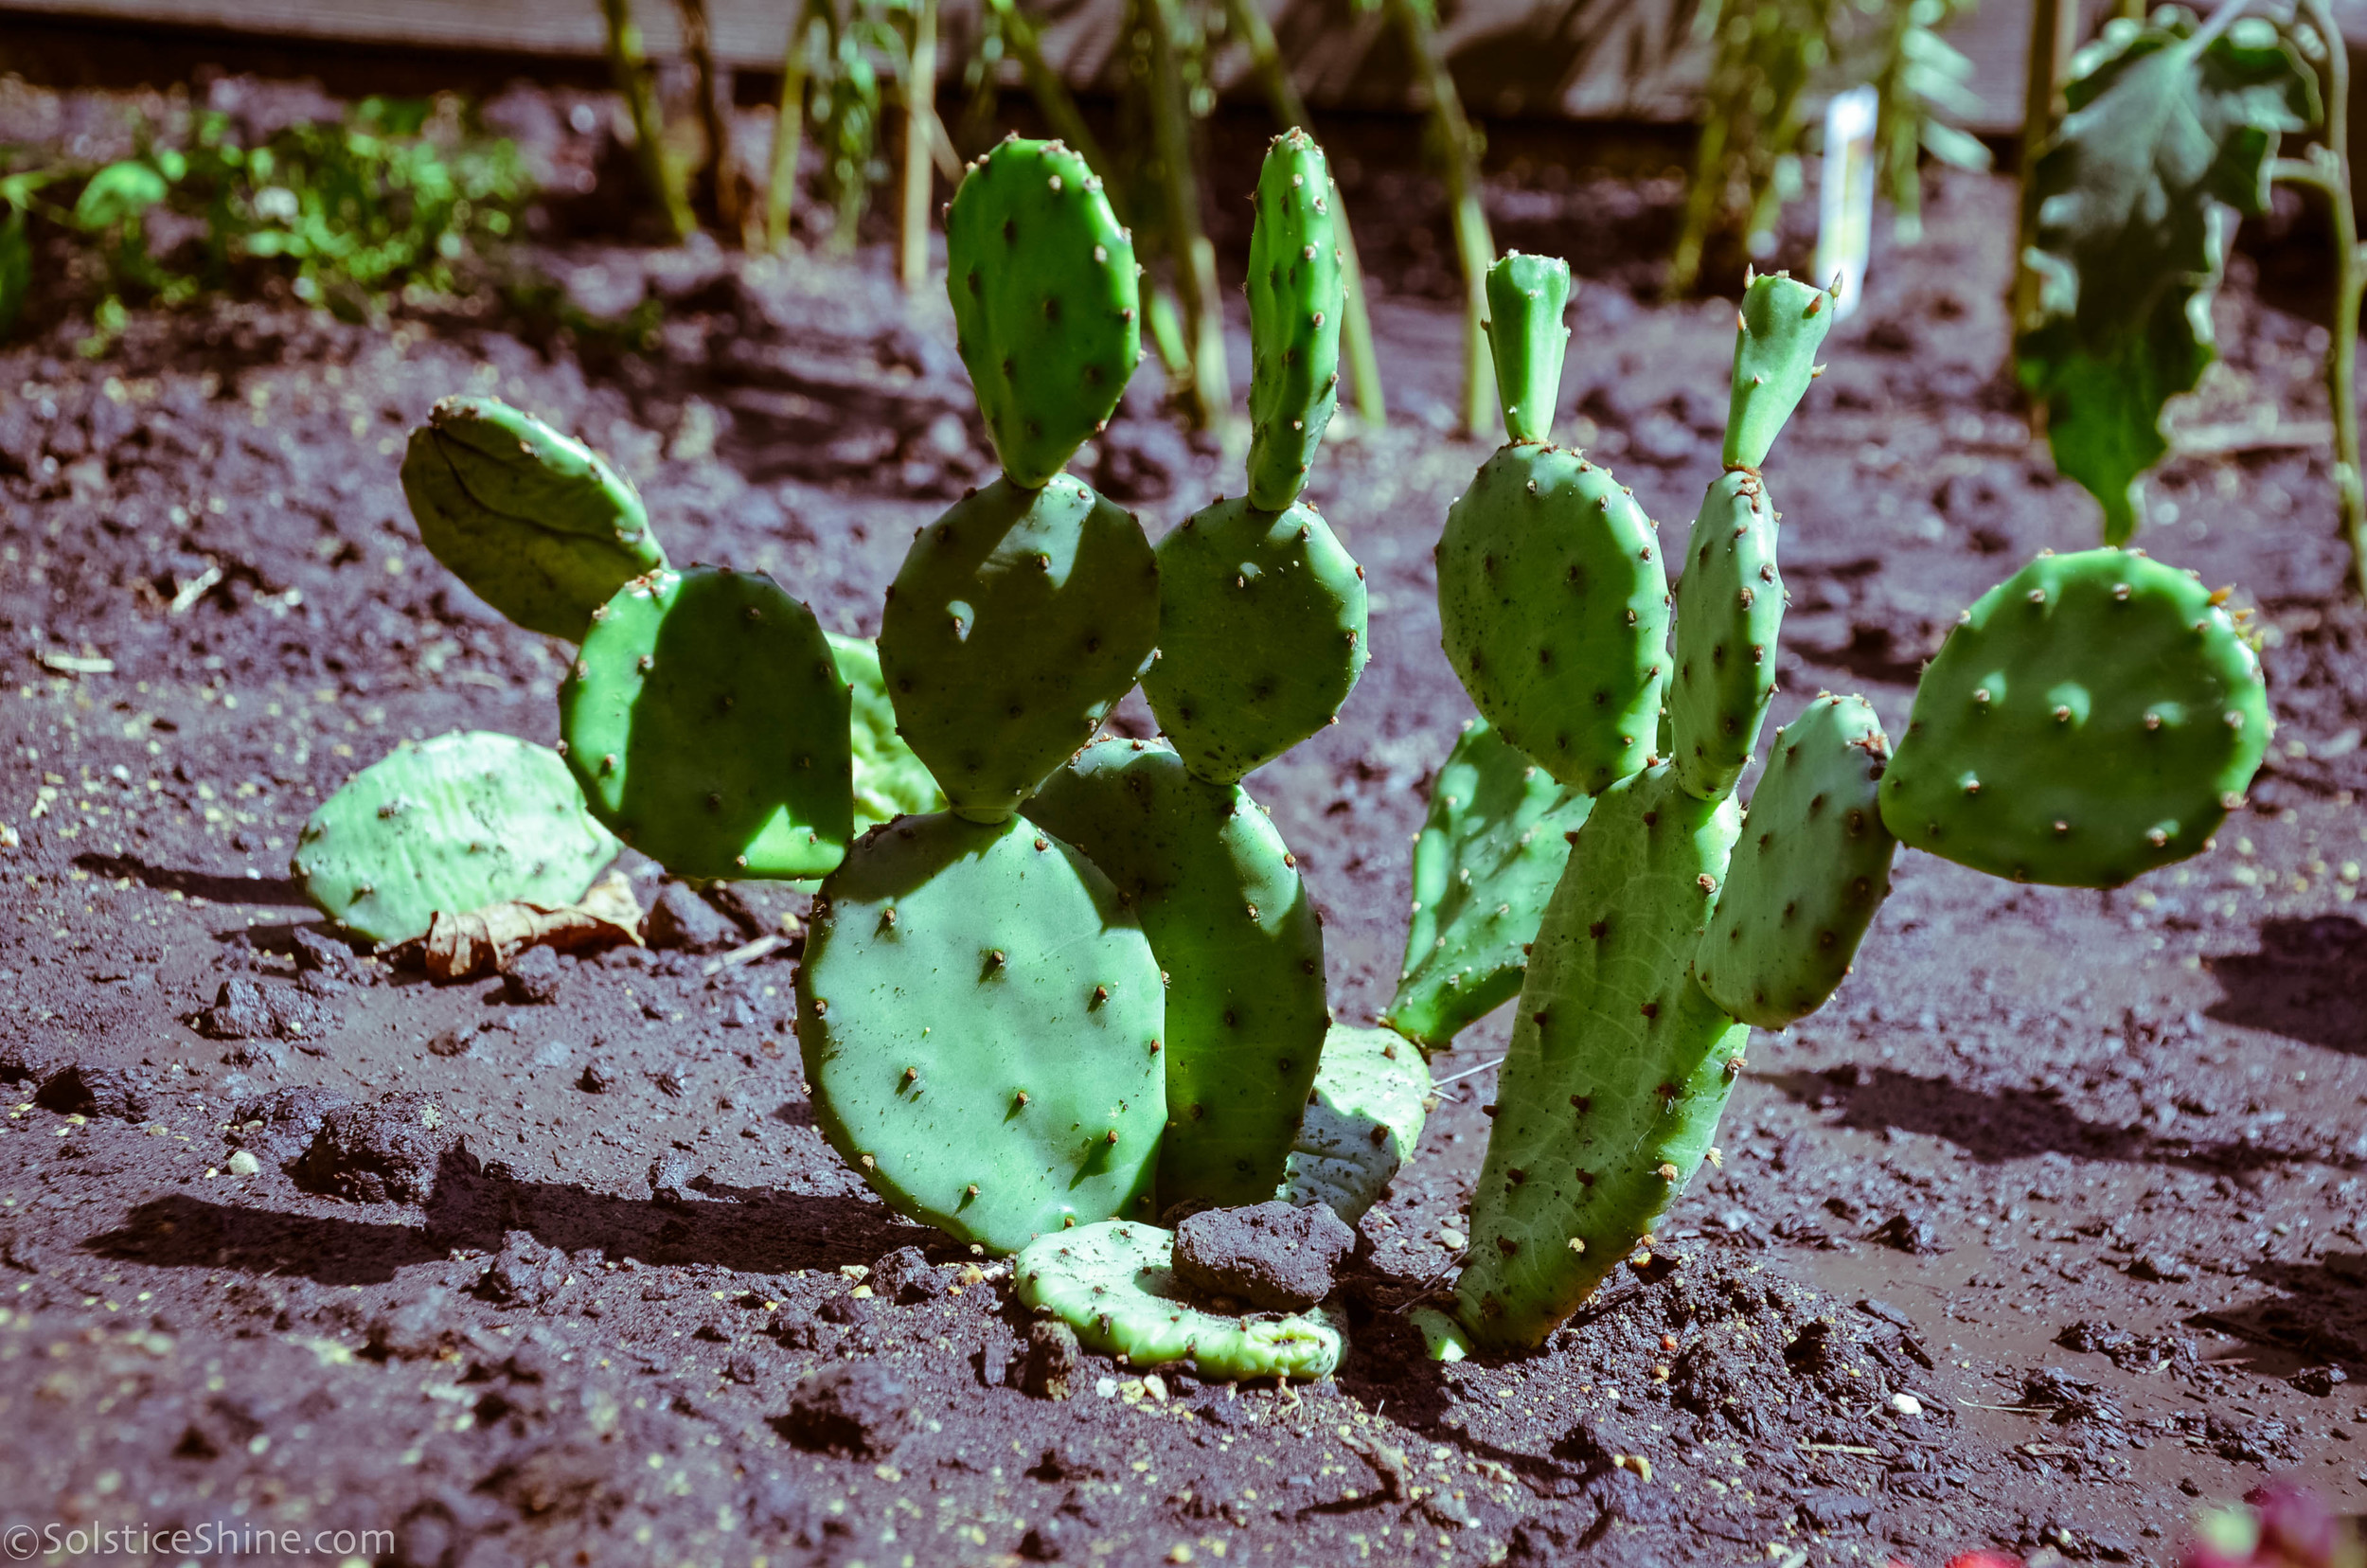 Pictures Of Prickly Pear Cactus